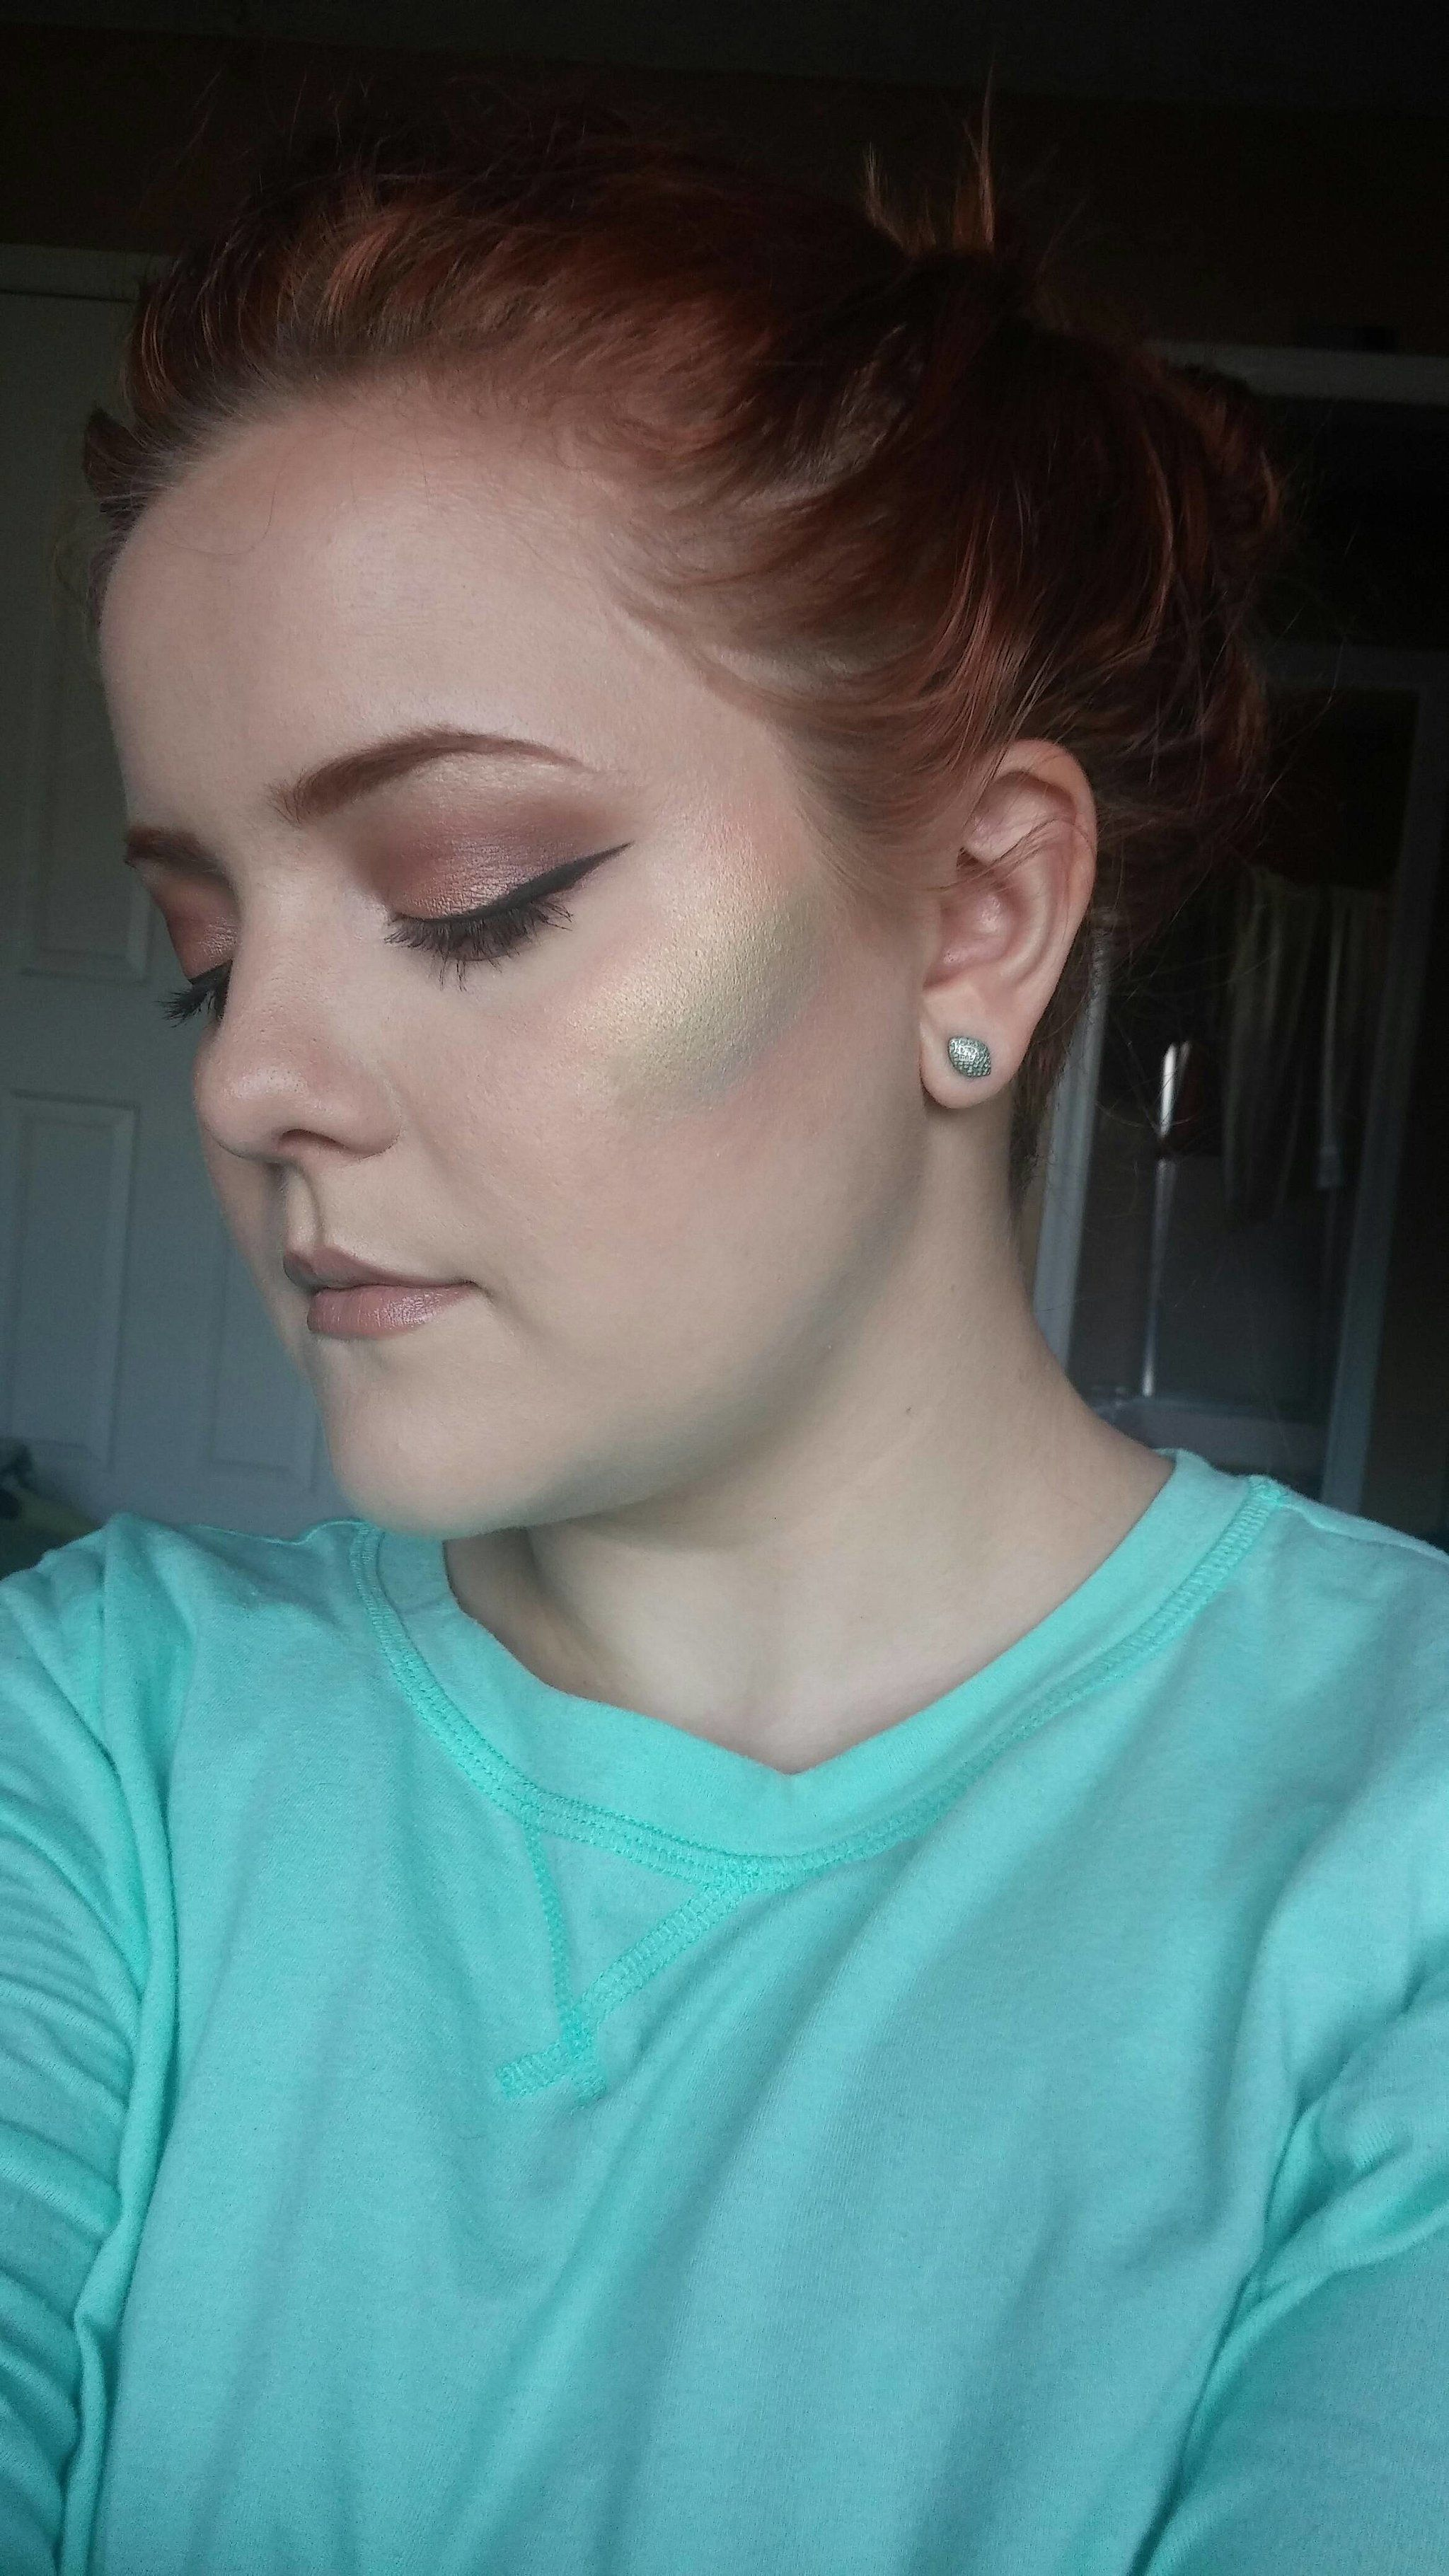 1 Woman Made Her Own DIY Rainbow Highlighter, and the Results Are Epic